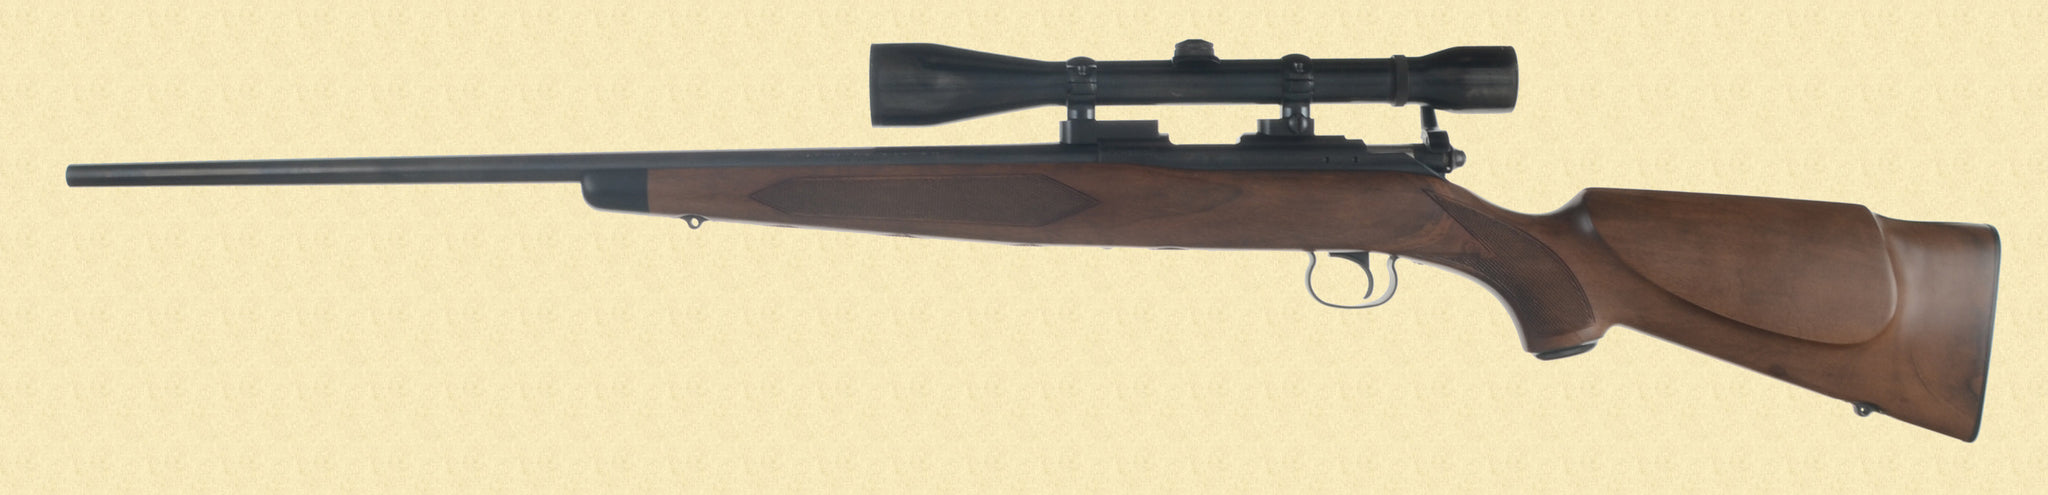 BROWNING MODEL 52